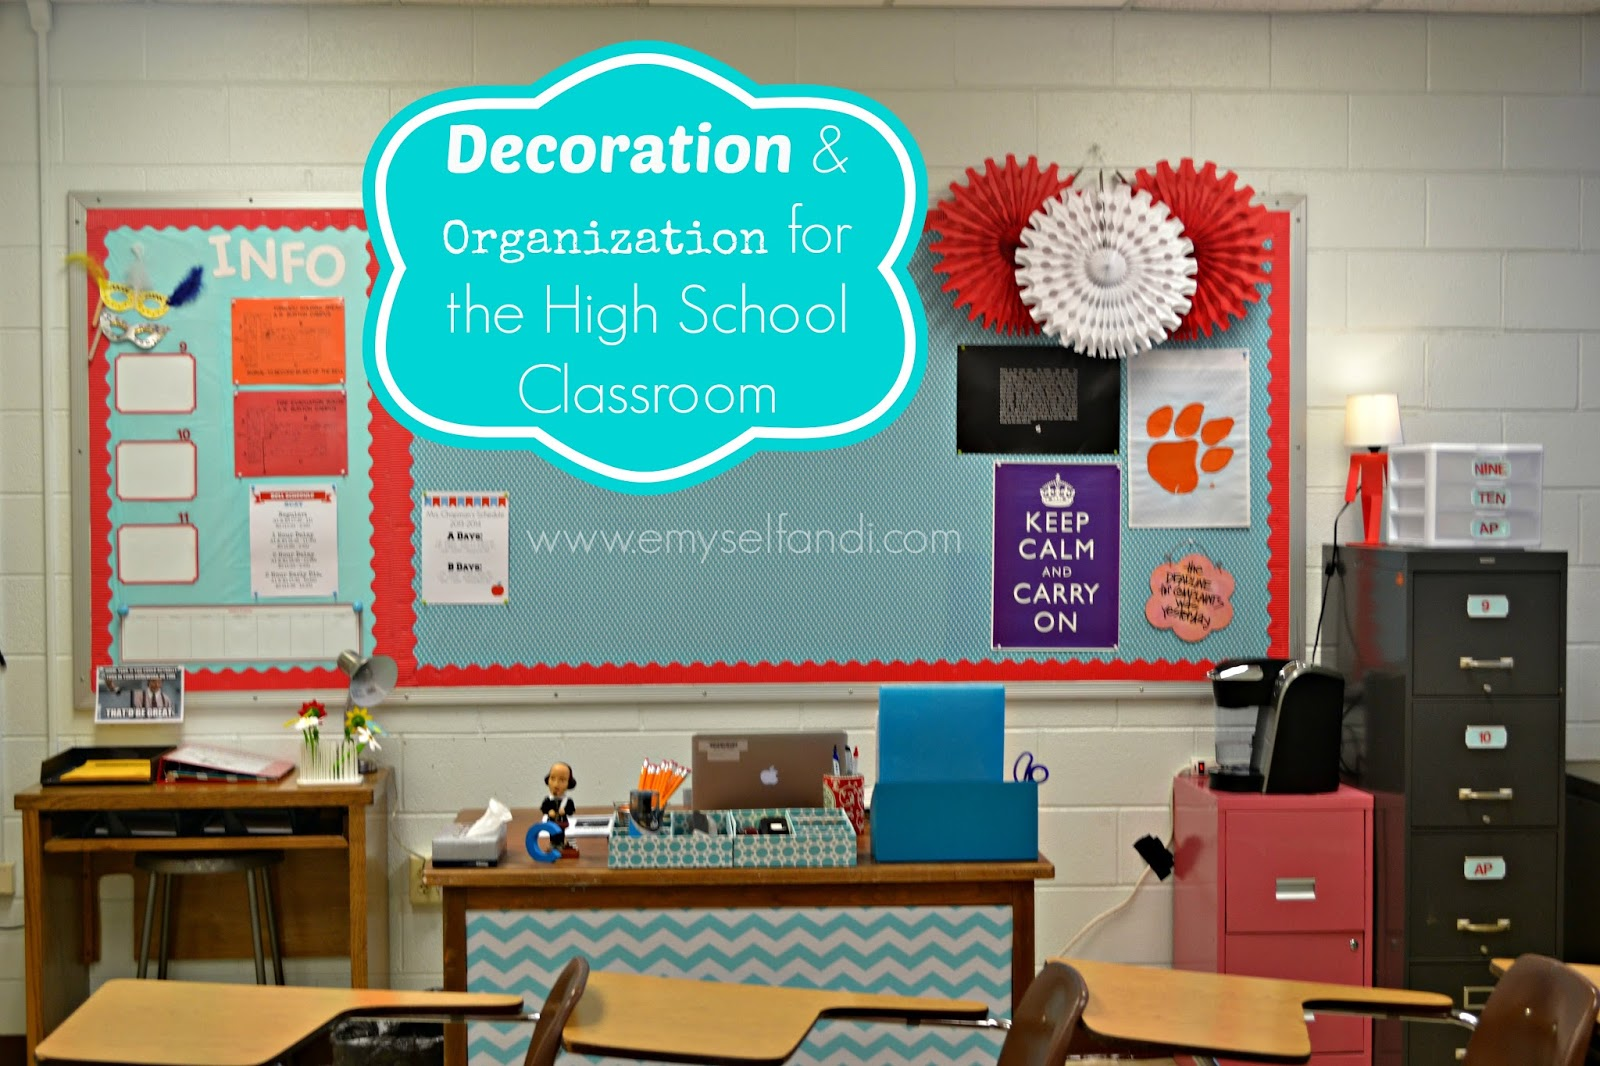 Teacher Classroom Decoration Supplies ~ E myself and i teaching tuesday decoration